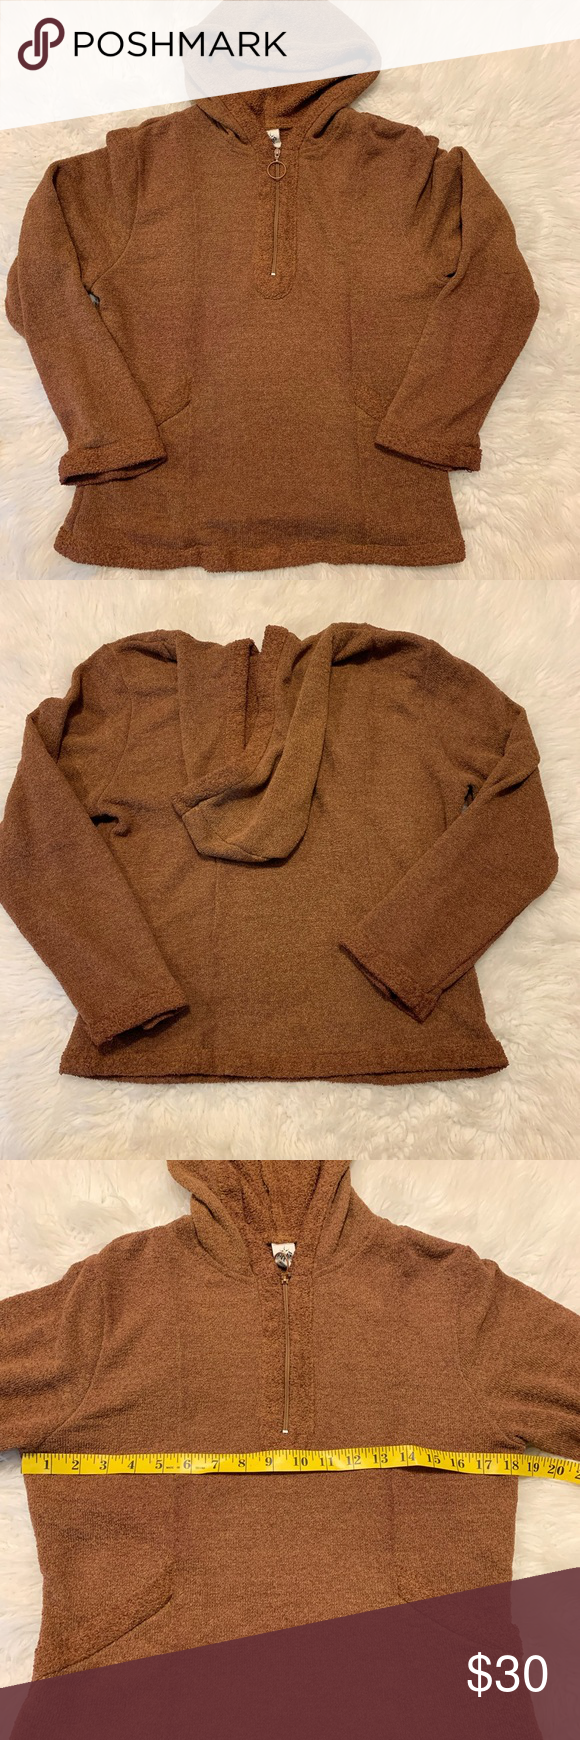 Prana Women's Brown Quarter-Zip Pullover Sweater Features -Front Pockets -Made in the USA  -Women's Size Medium Please see pictures 3 & 4 for measurements   -Good Gently Used Condition GUC No apparent flaws and lots of life left  -Please feel free to ask questions  No trades or modeling requests pleas  A0615 Prana Sweaters